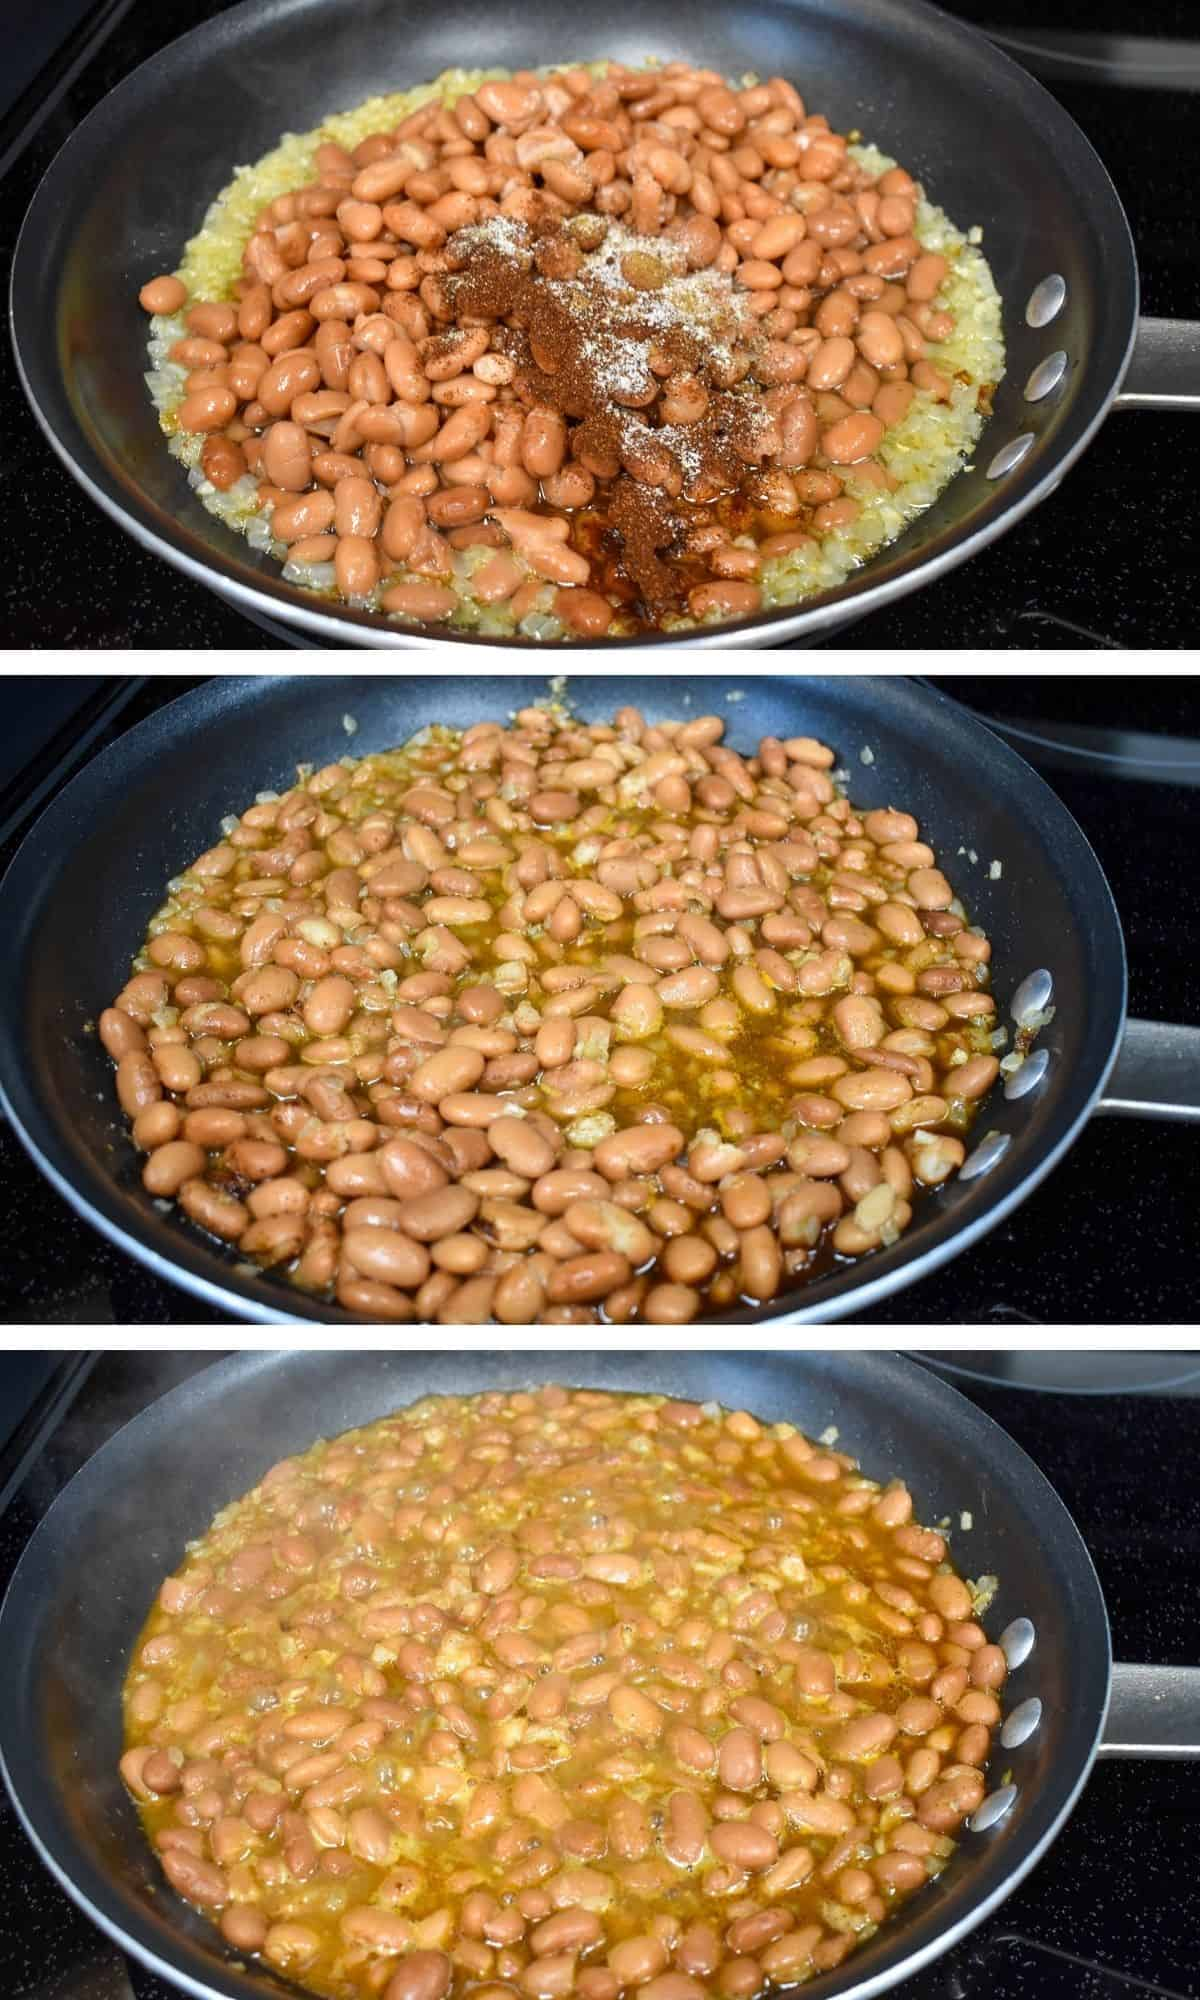 Three images of the steps making refried beans, before mashing.